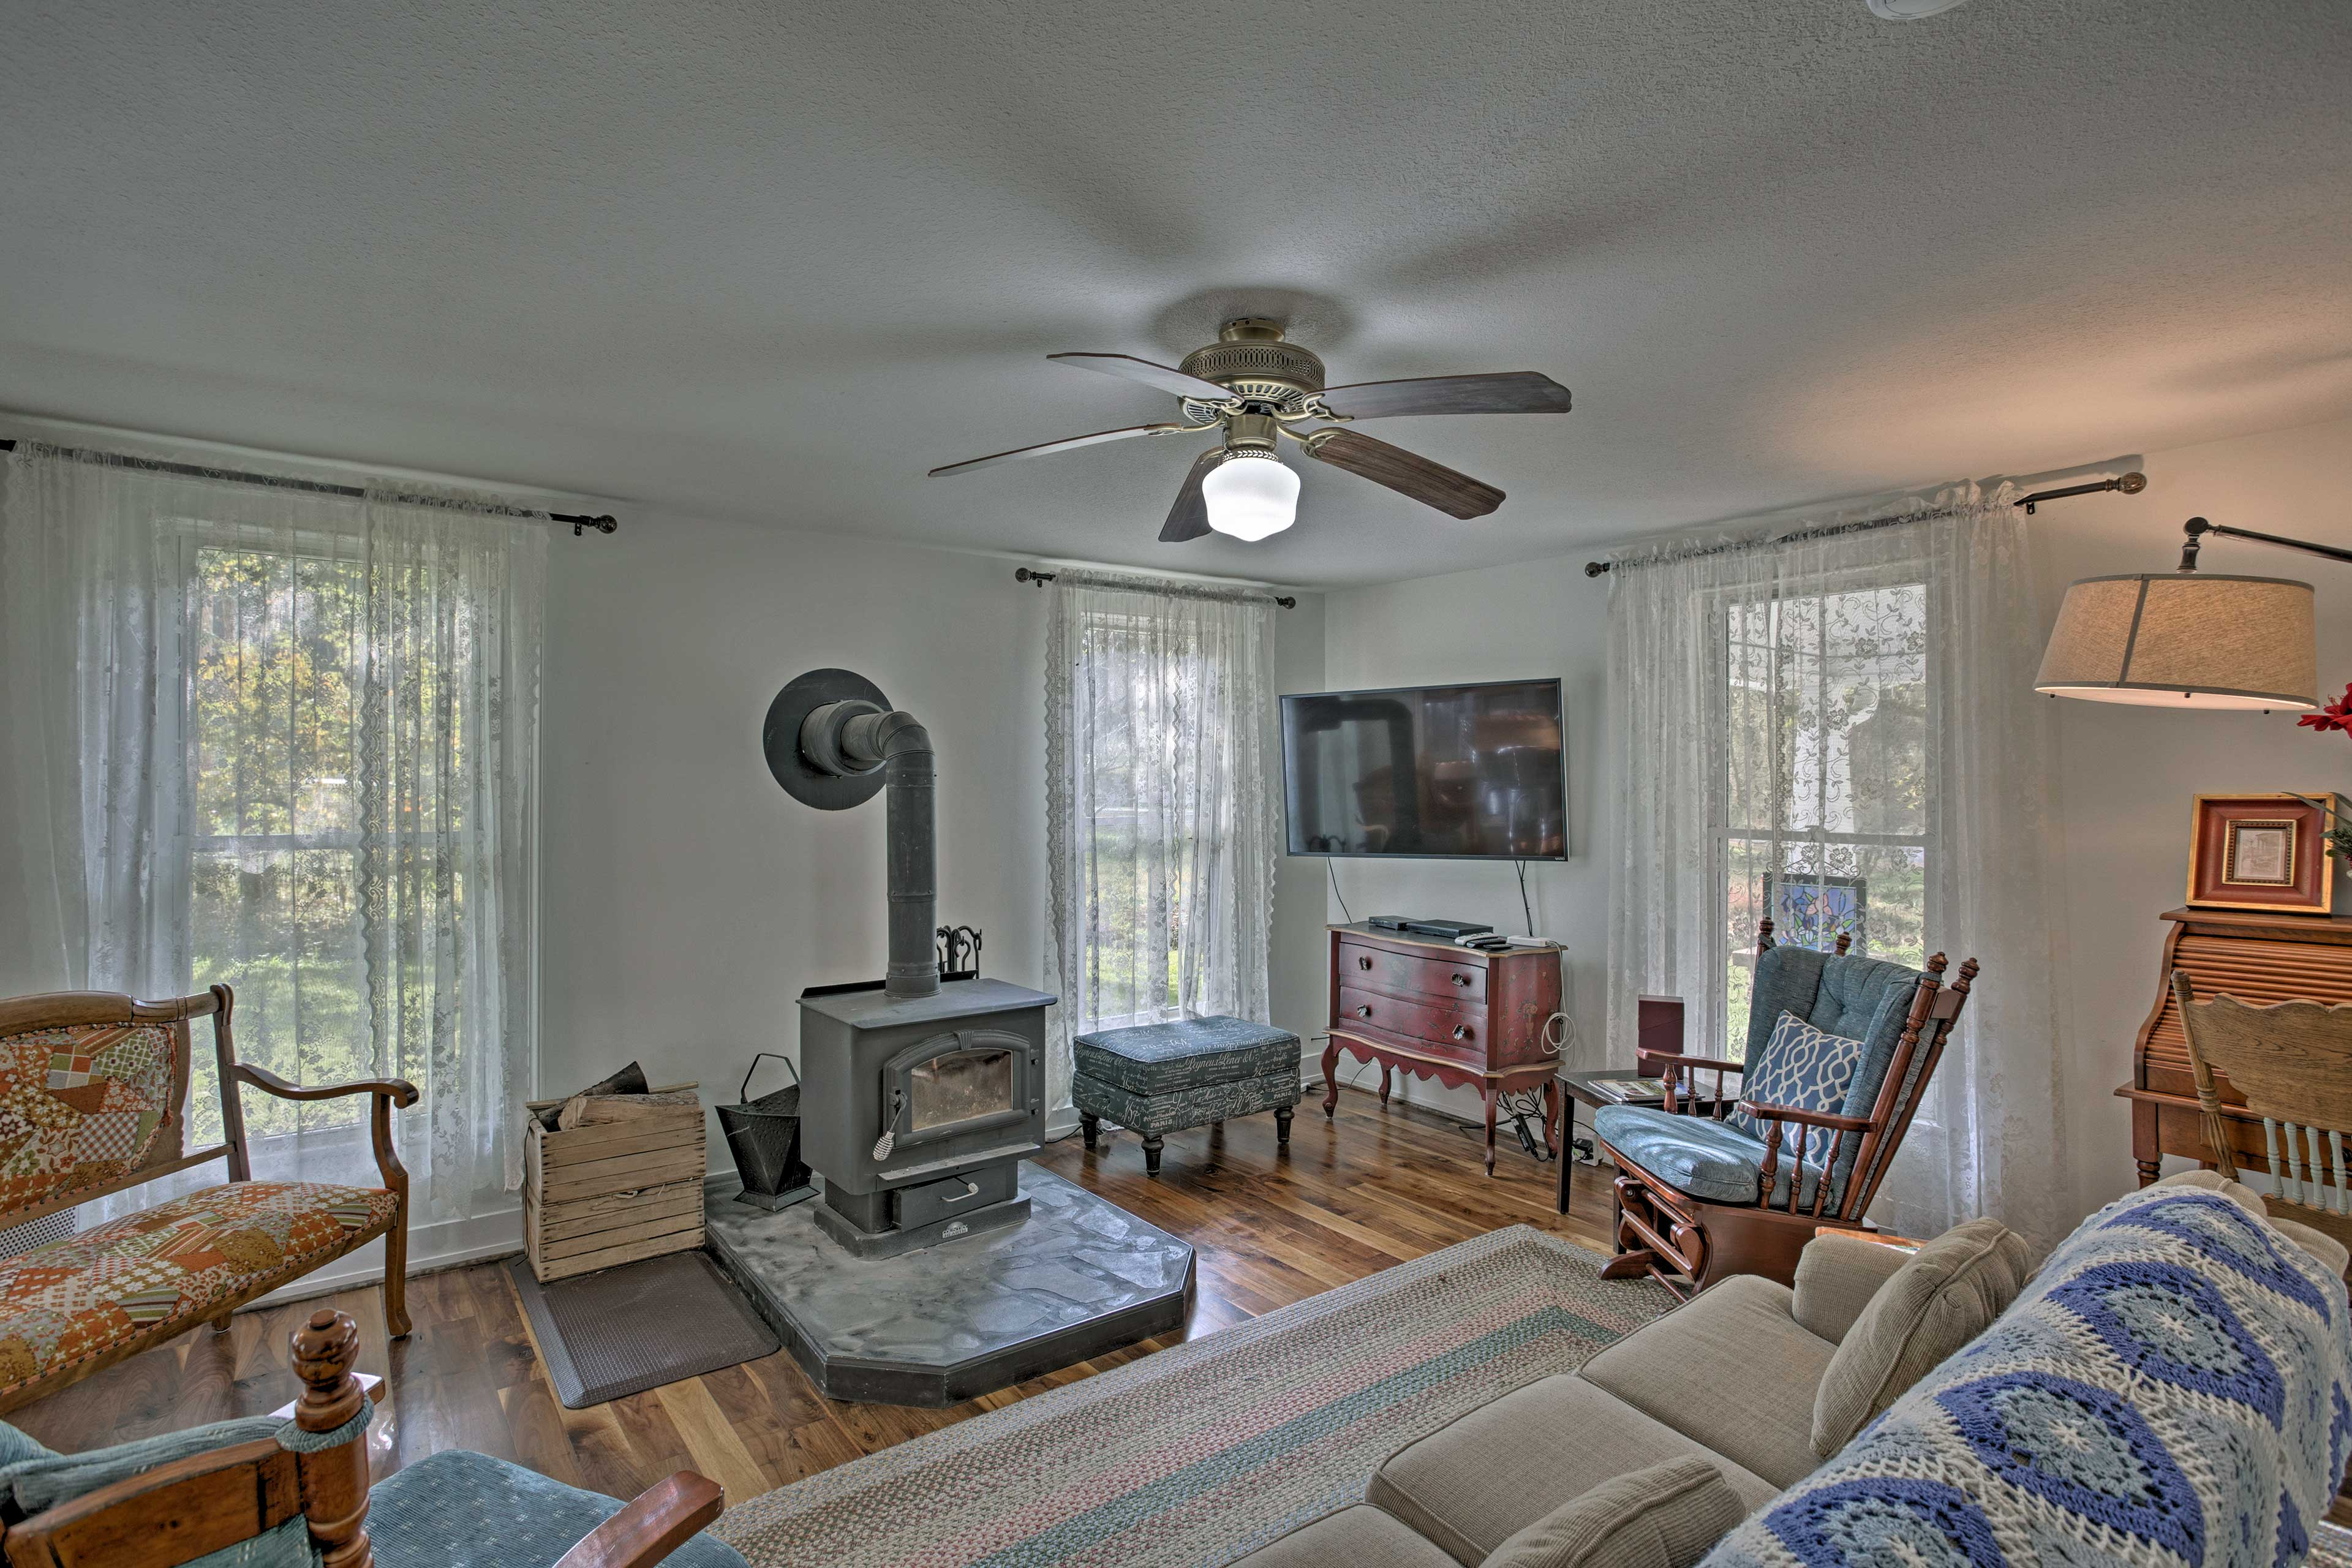 Up to 12 guests can make themselves at home in this cozy living room.